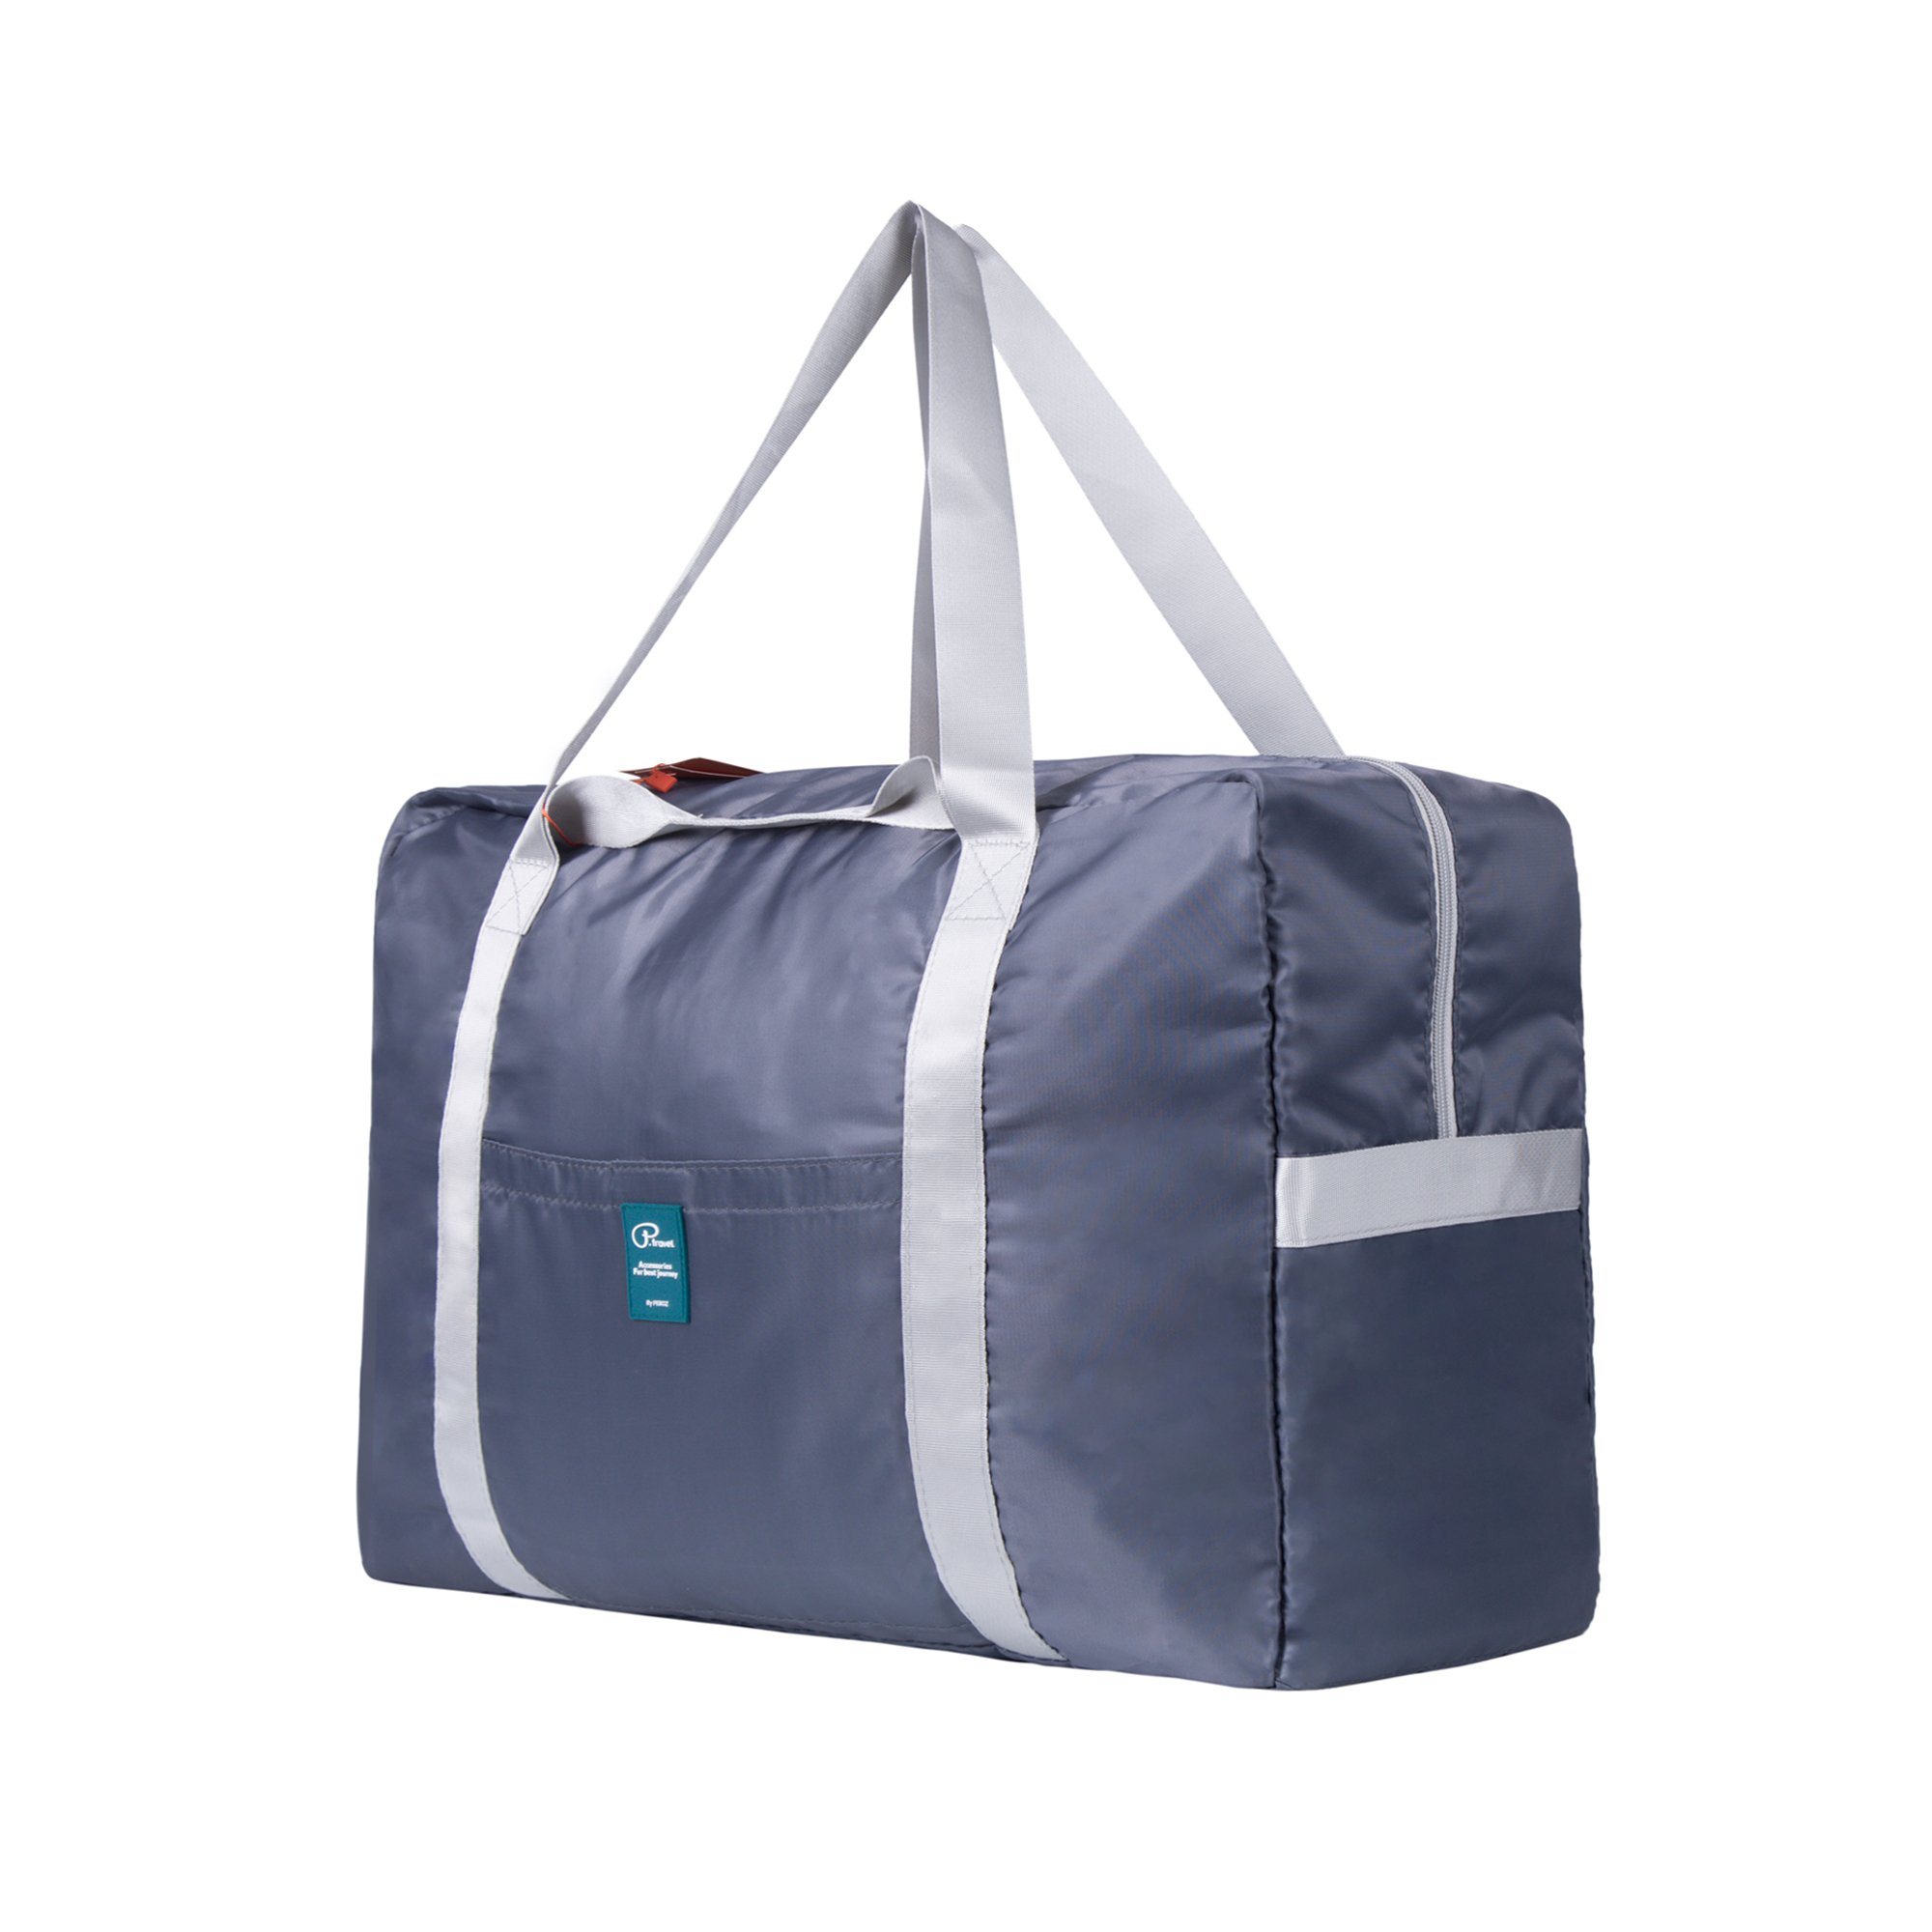 Foldable Travel Bag Lightweight Waterproof Travel Duffel Bag Large Capacity Carry on Tote Bag By Lucien Hanna